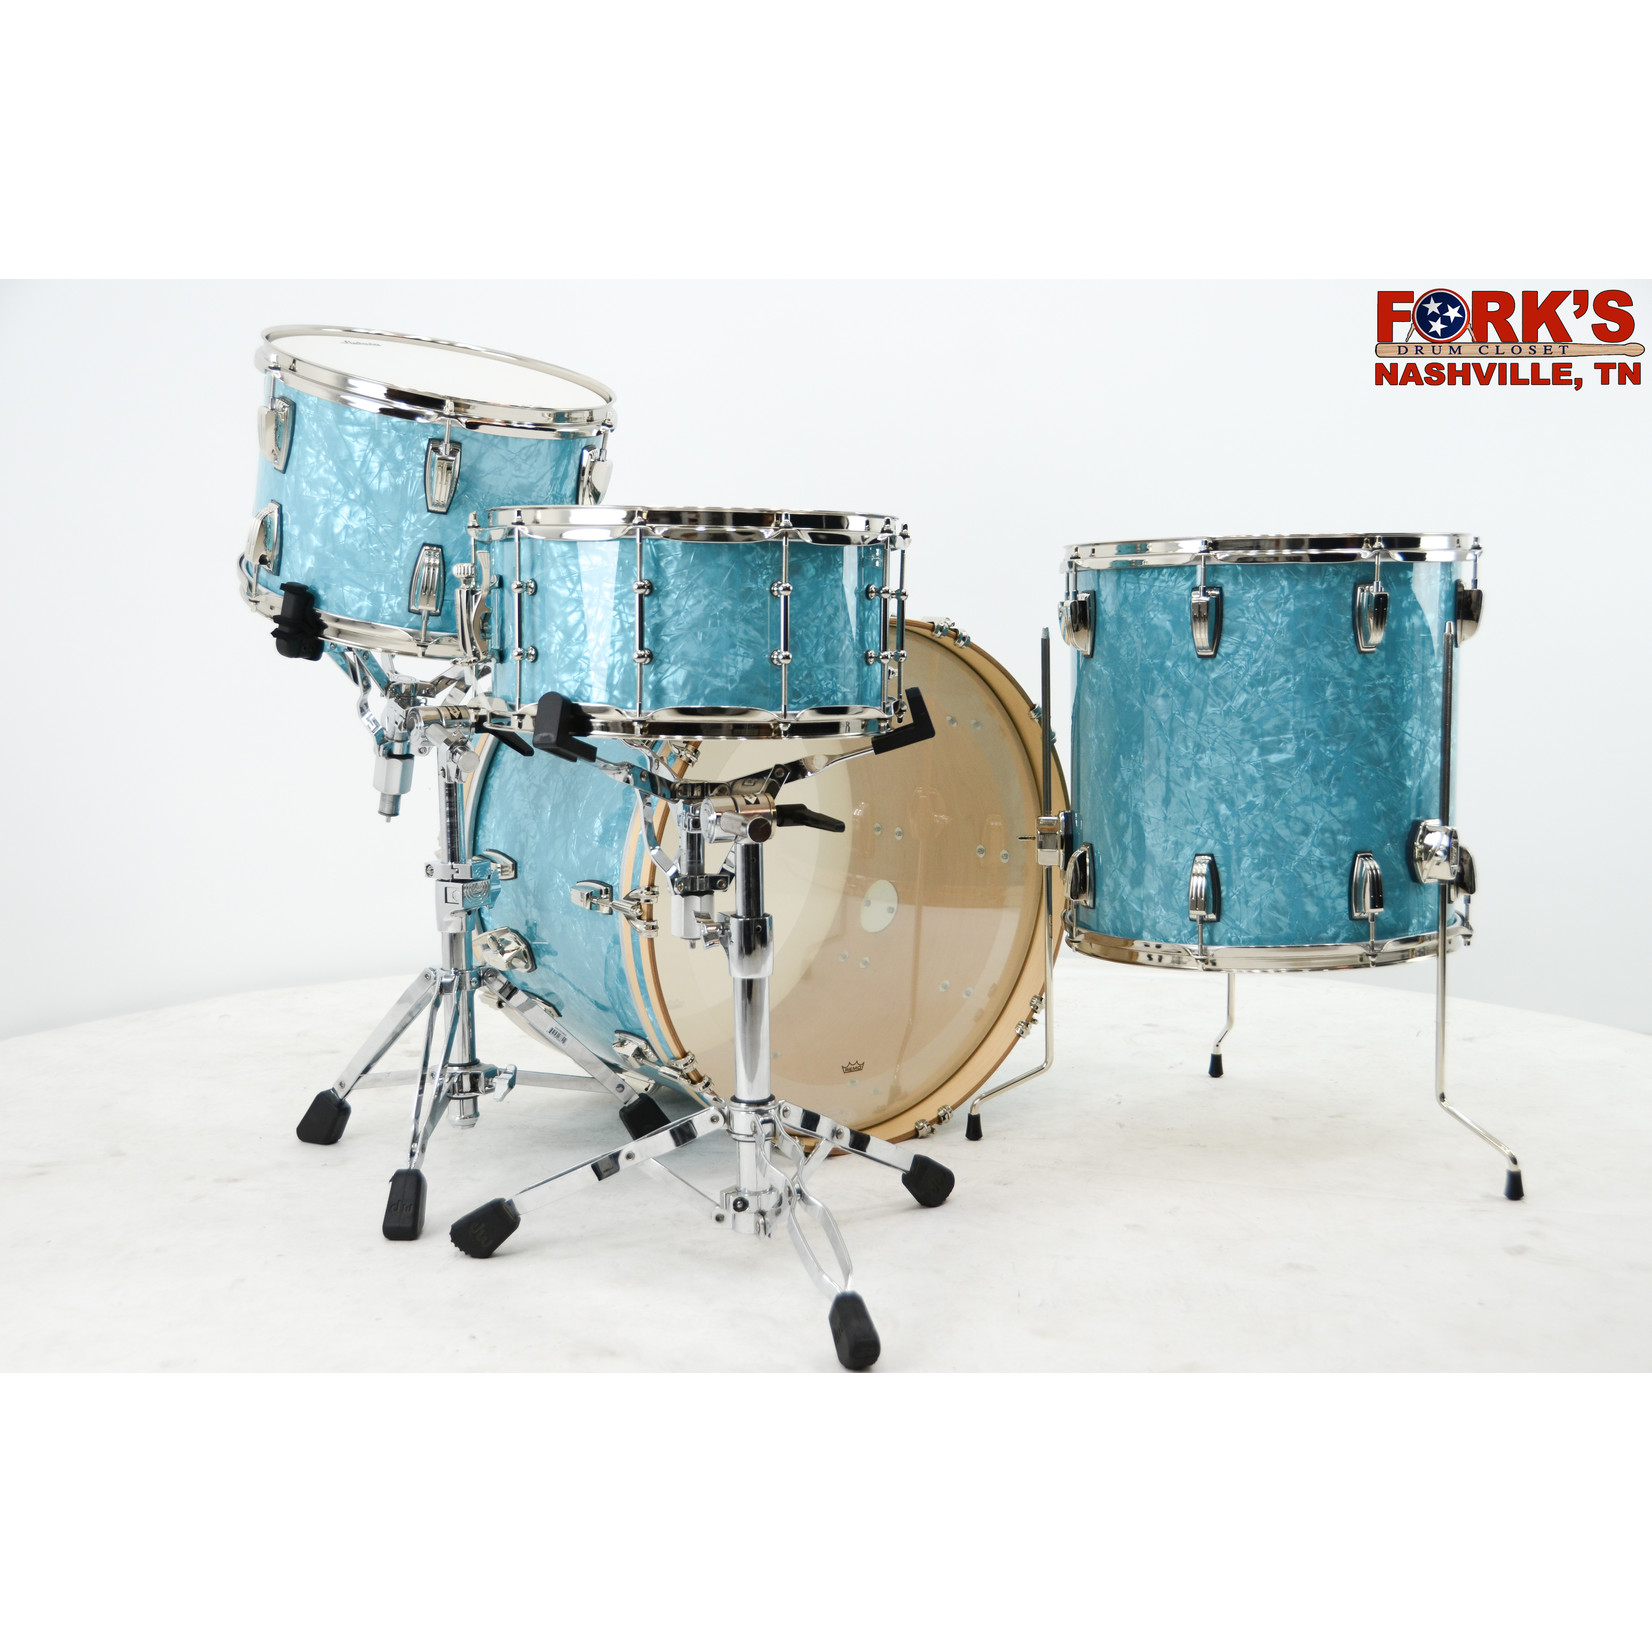 """Ludwig Ludwig Classic Maple 4pc Drum Kit """"Ice Blue Oyster"""" w/ Nickel Hardware"""